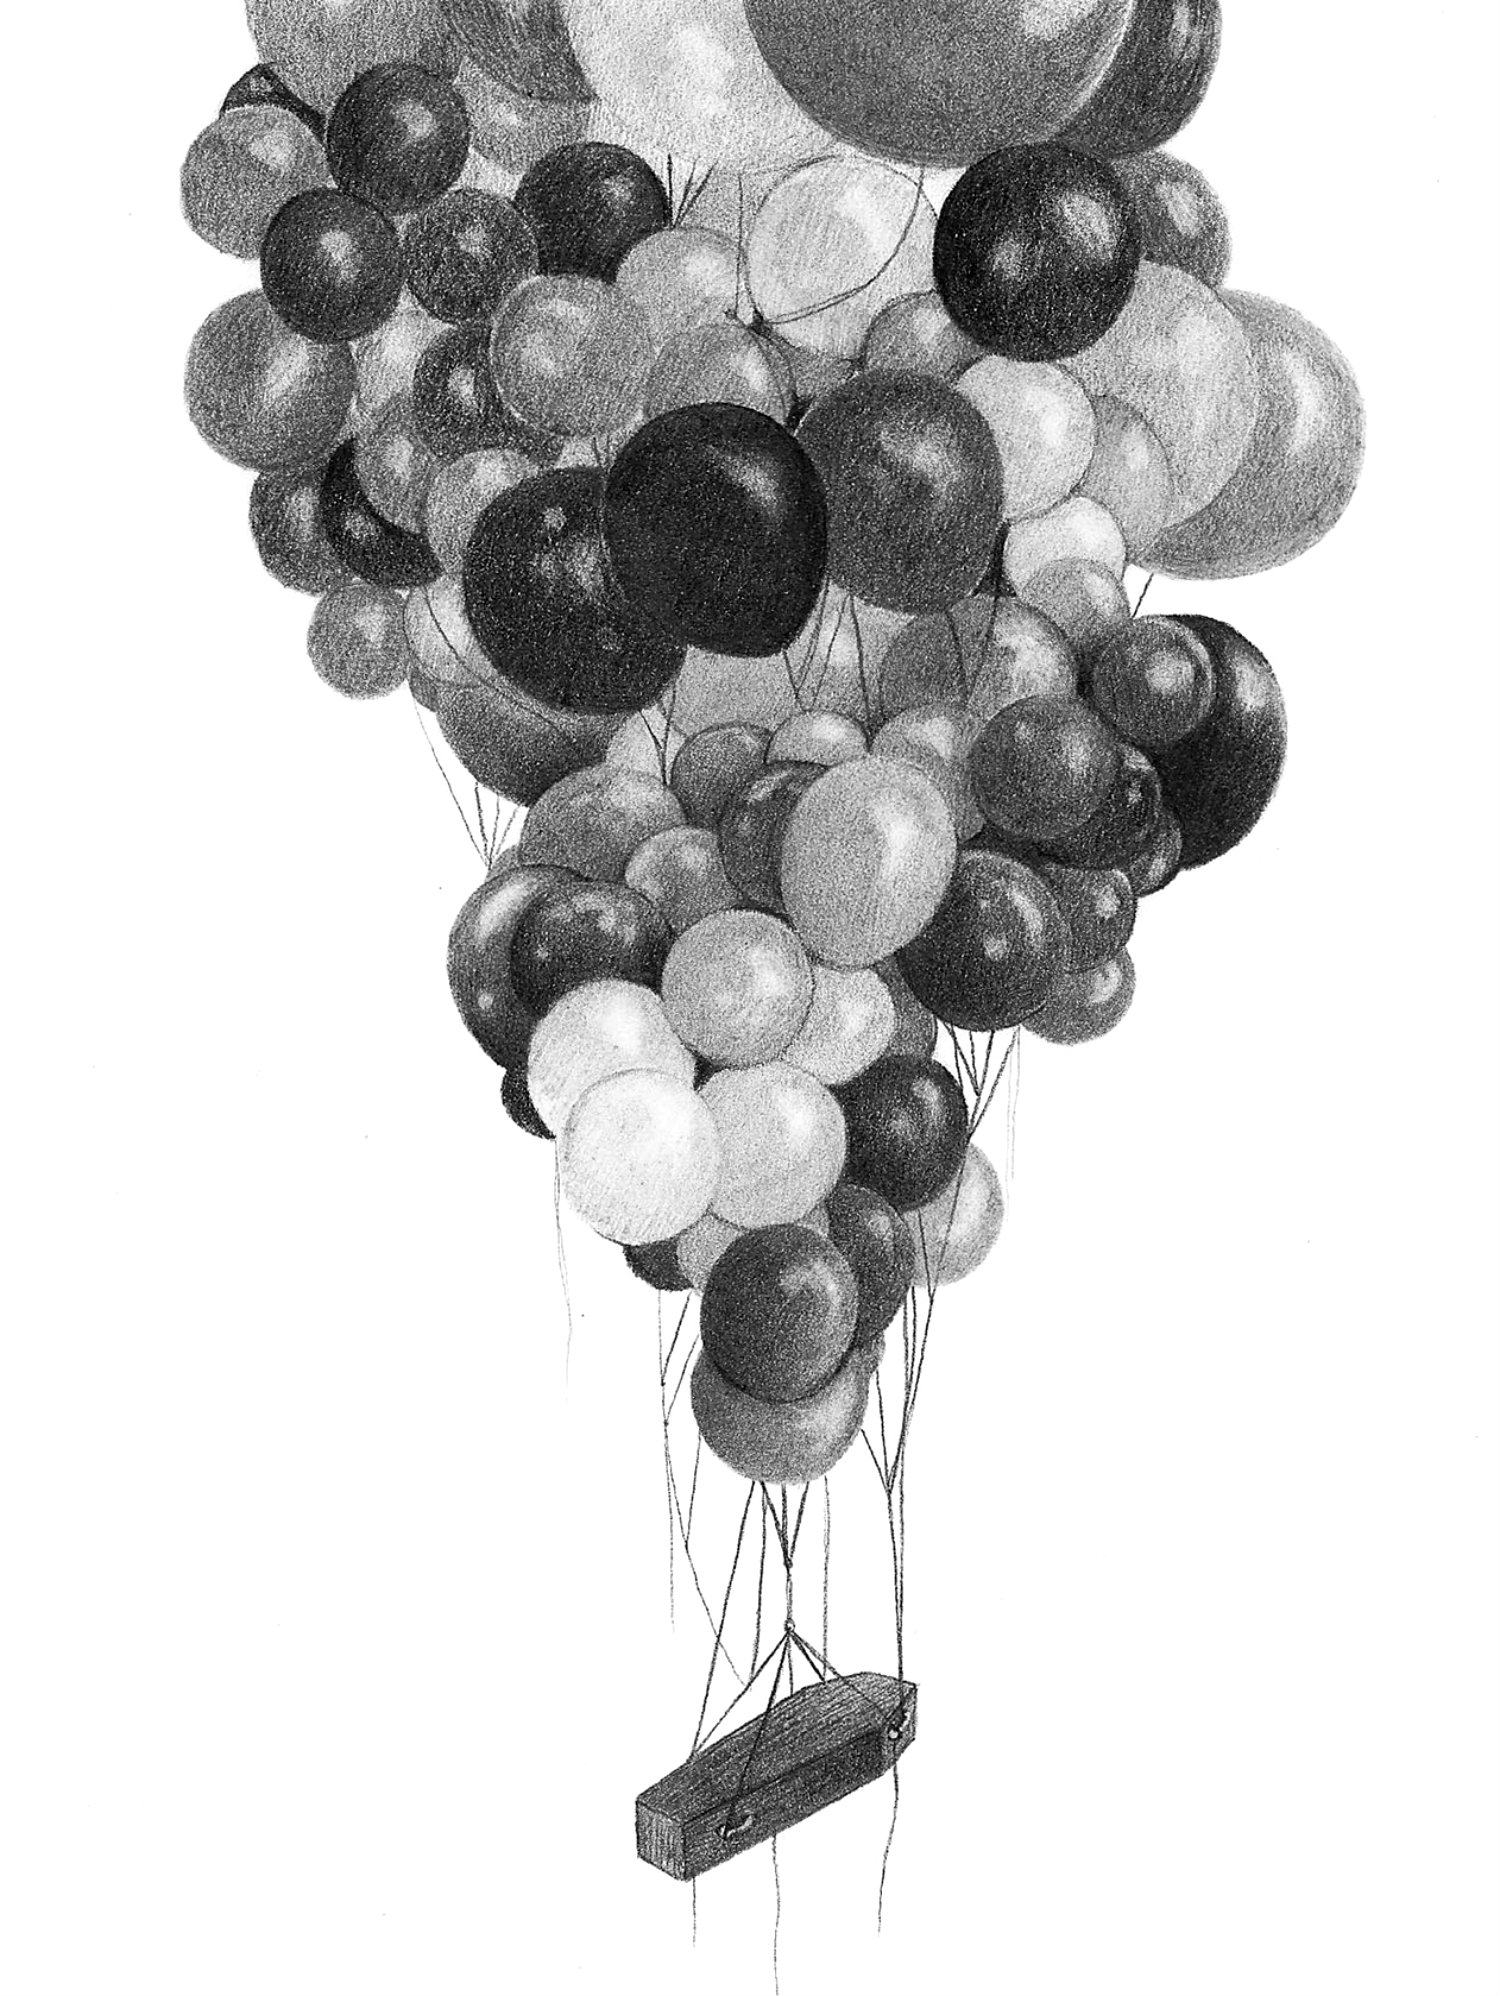 Alejandro García Restrepo illustration black white pencil balloons